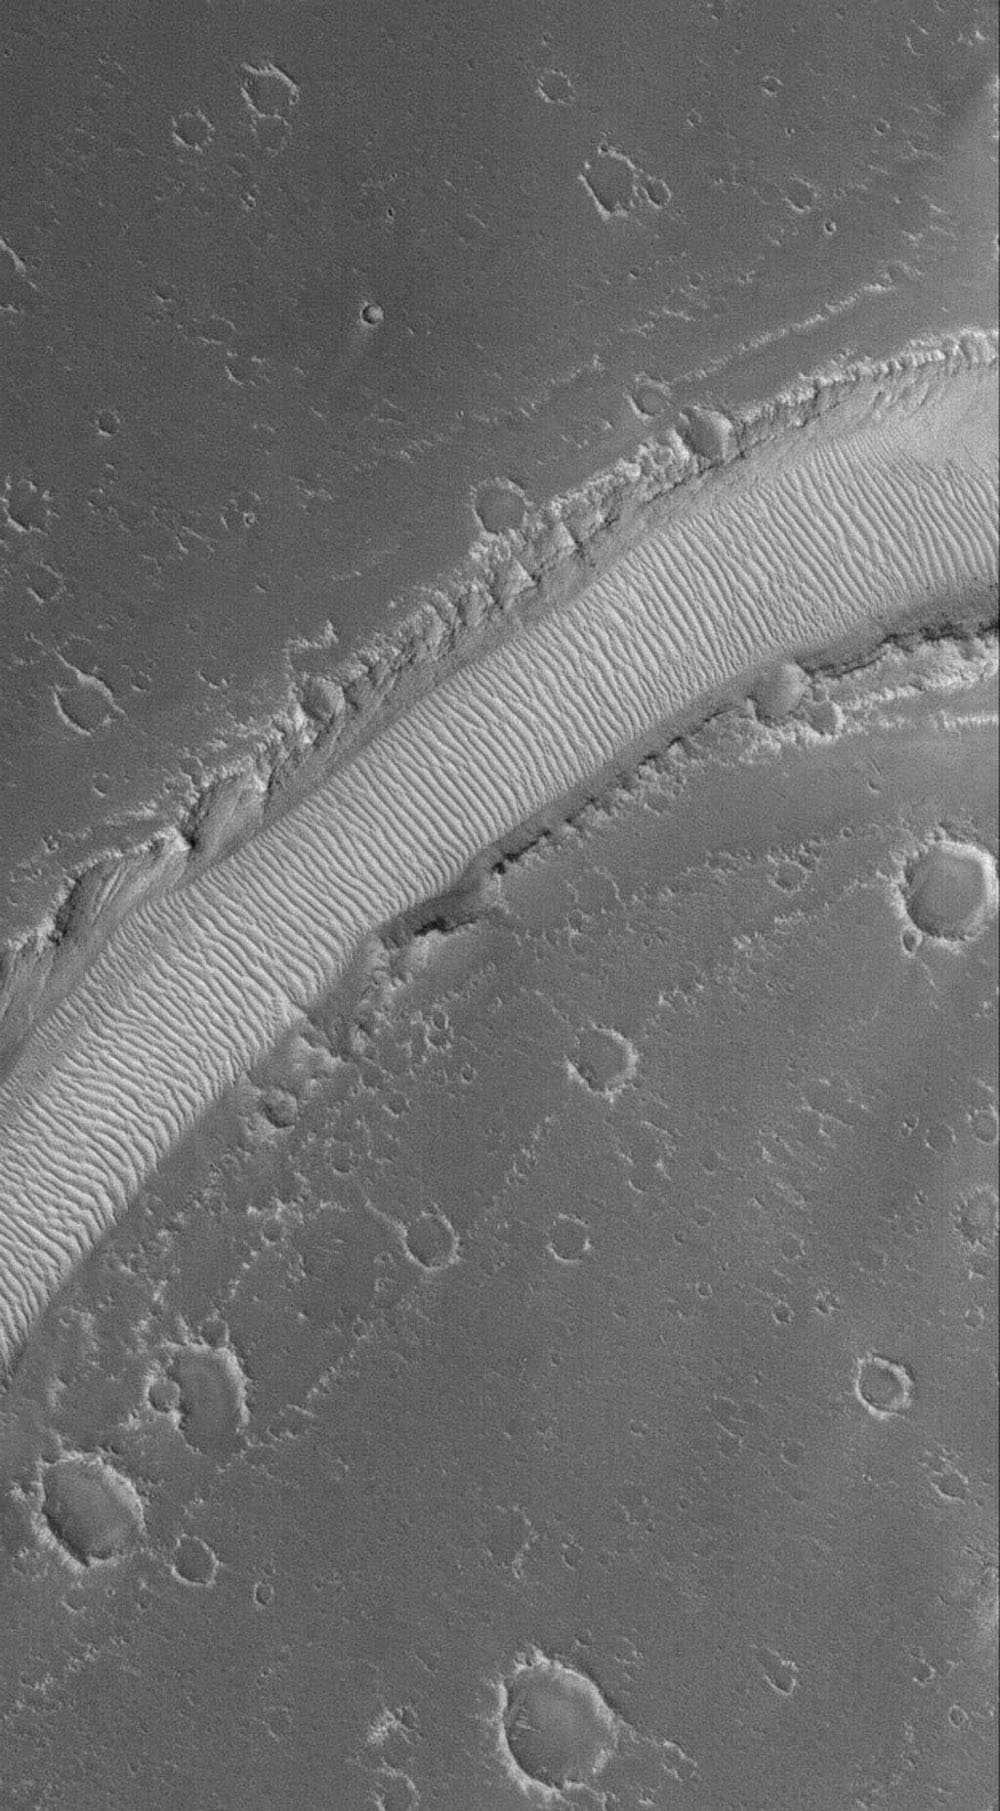 NASA's Mars Global Surveyor shows a ripple-covered valley floor in the Hyblaeus Fossae region on Mars. Winds blowing up and down the length of the valley have helped to concentrate windblown grains to form these large, megaripples.